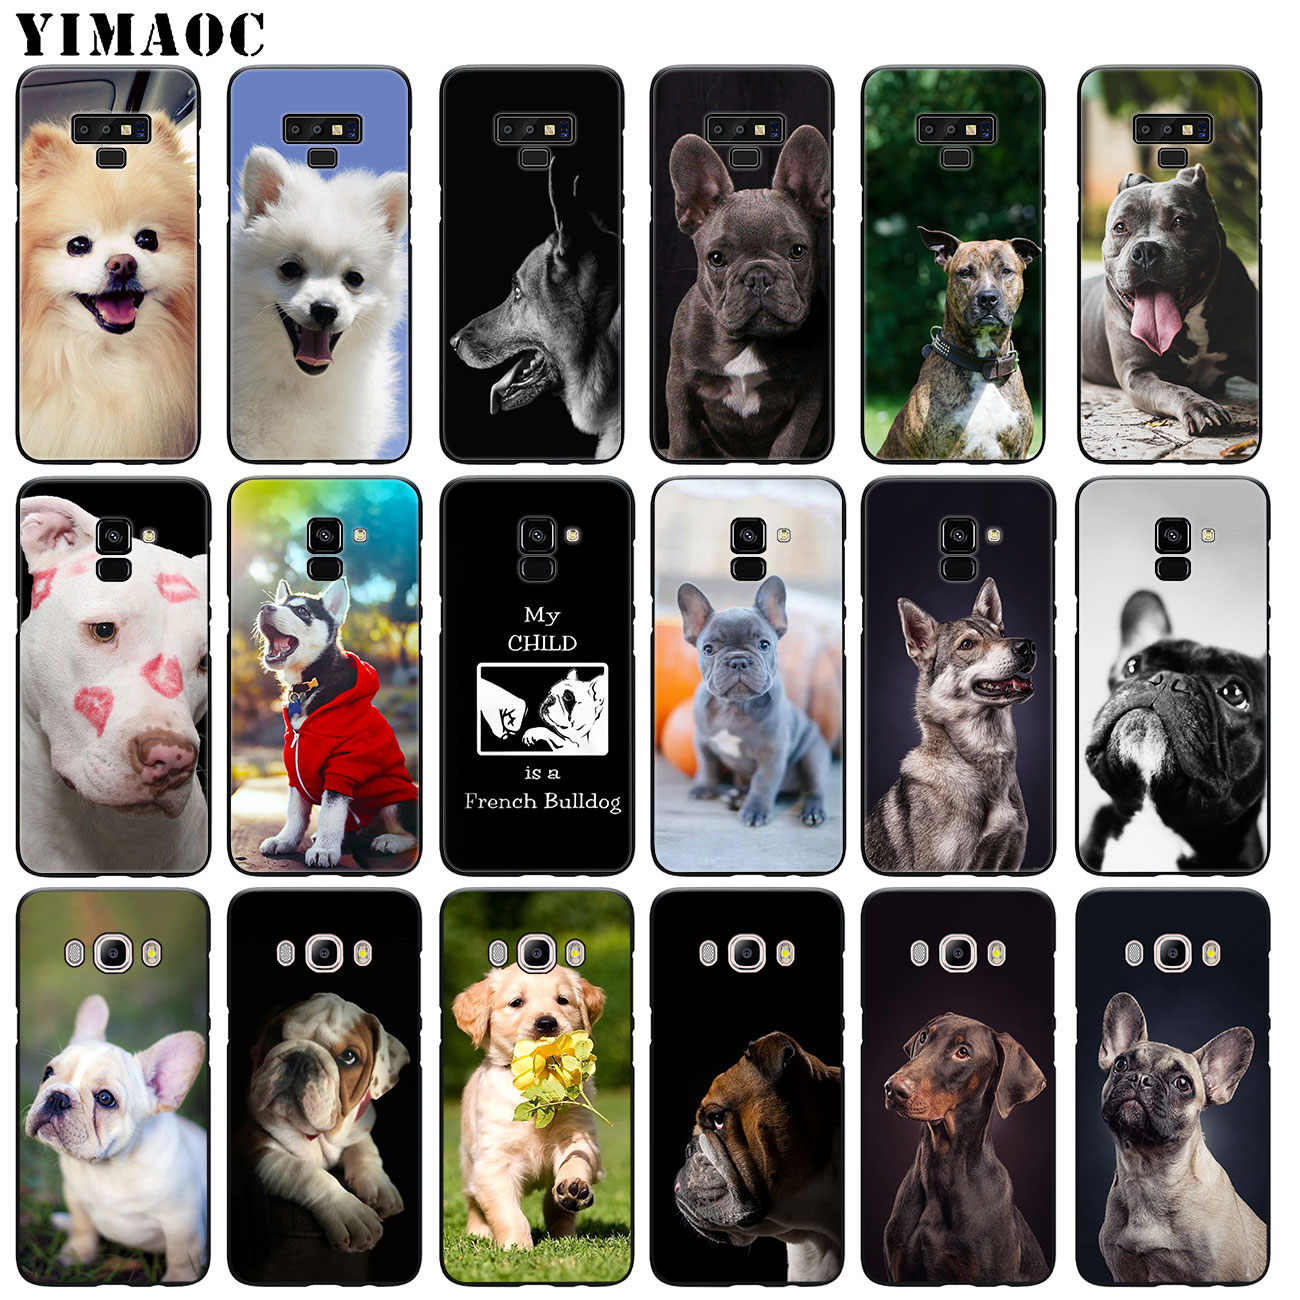 YIMAOC Bulldog pug Puppies <font><b>dog</b></font> Soft Silicone <font><b>Phone</b></font> <font><b>Case</b></font> for <font><b>Samsung</b></font> <font><b>Galaxy</b></font> A6 Plus A9 A8 A7 2018 <font><b>A3</b></font> A5 2016 <font><b>2017</b></font> Note 9 8 Cover image